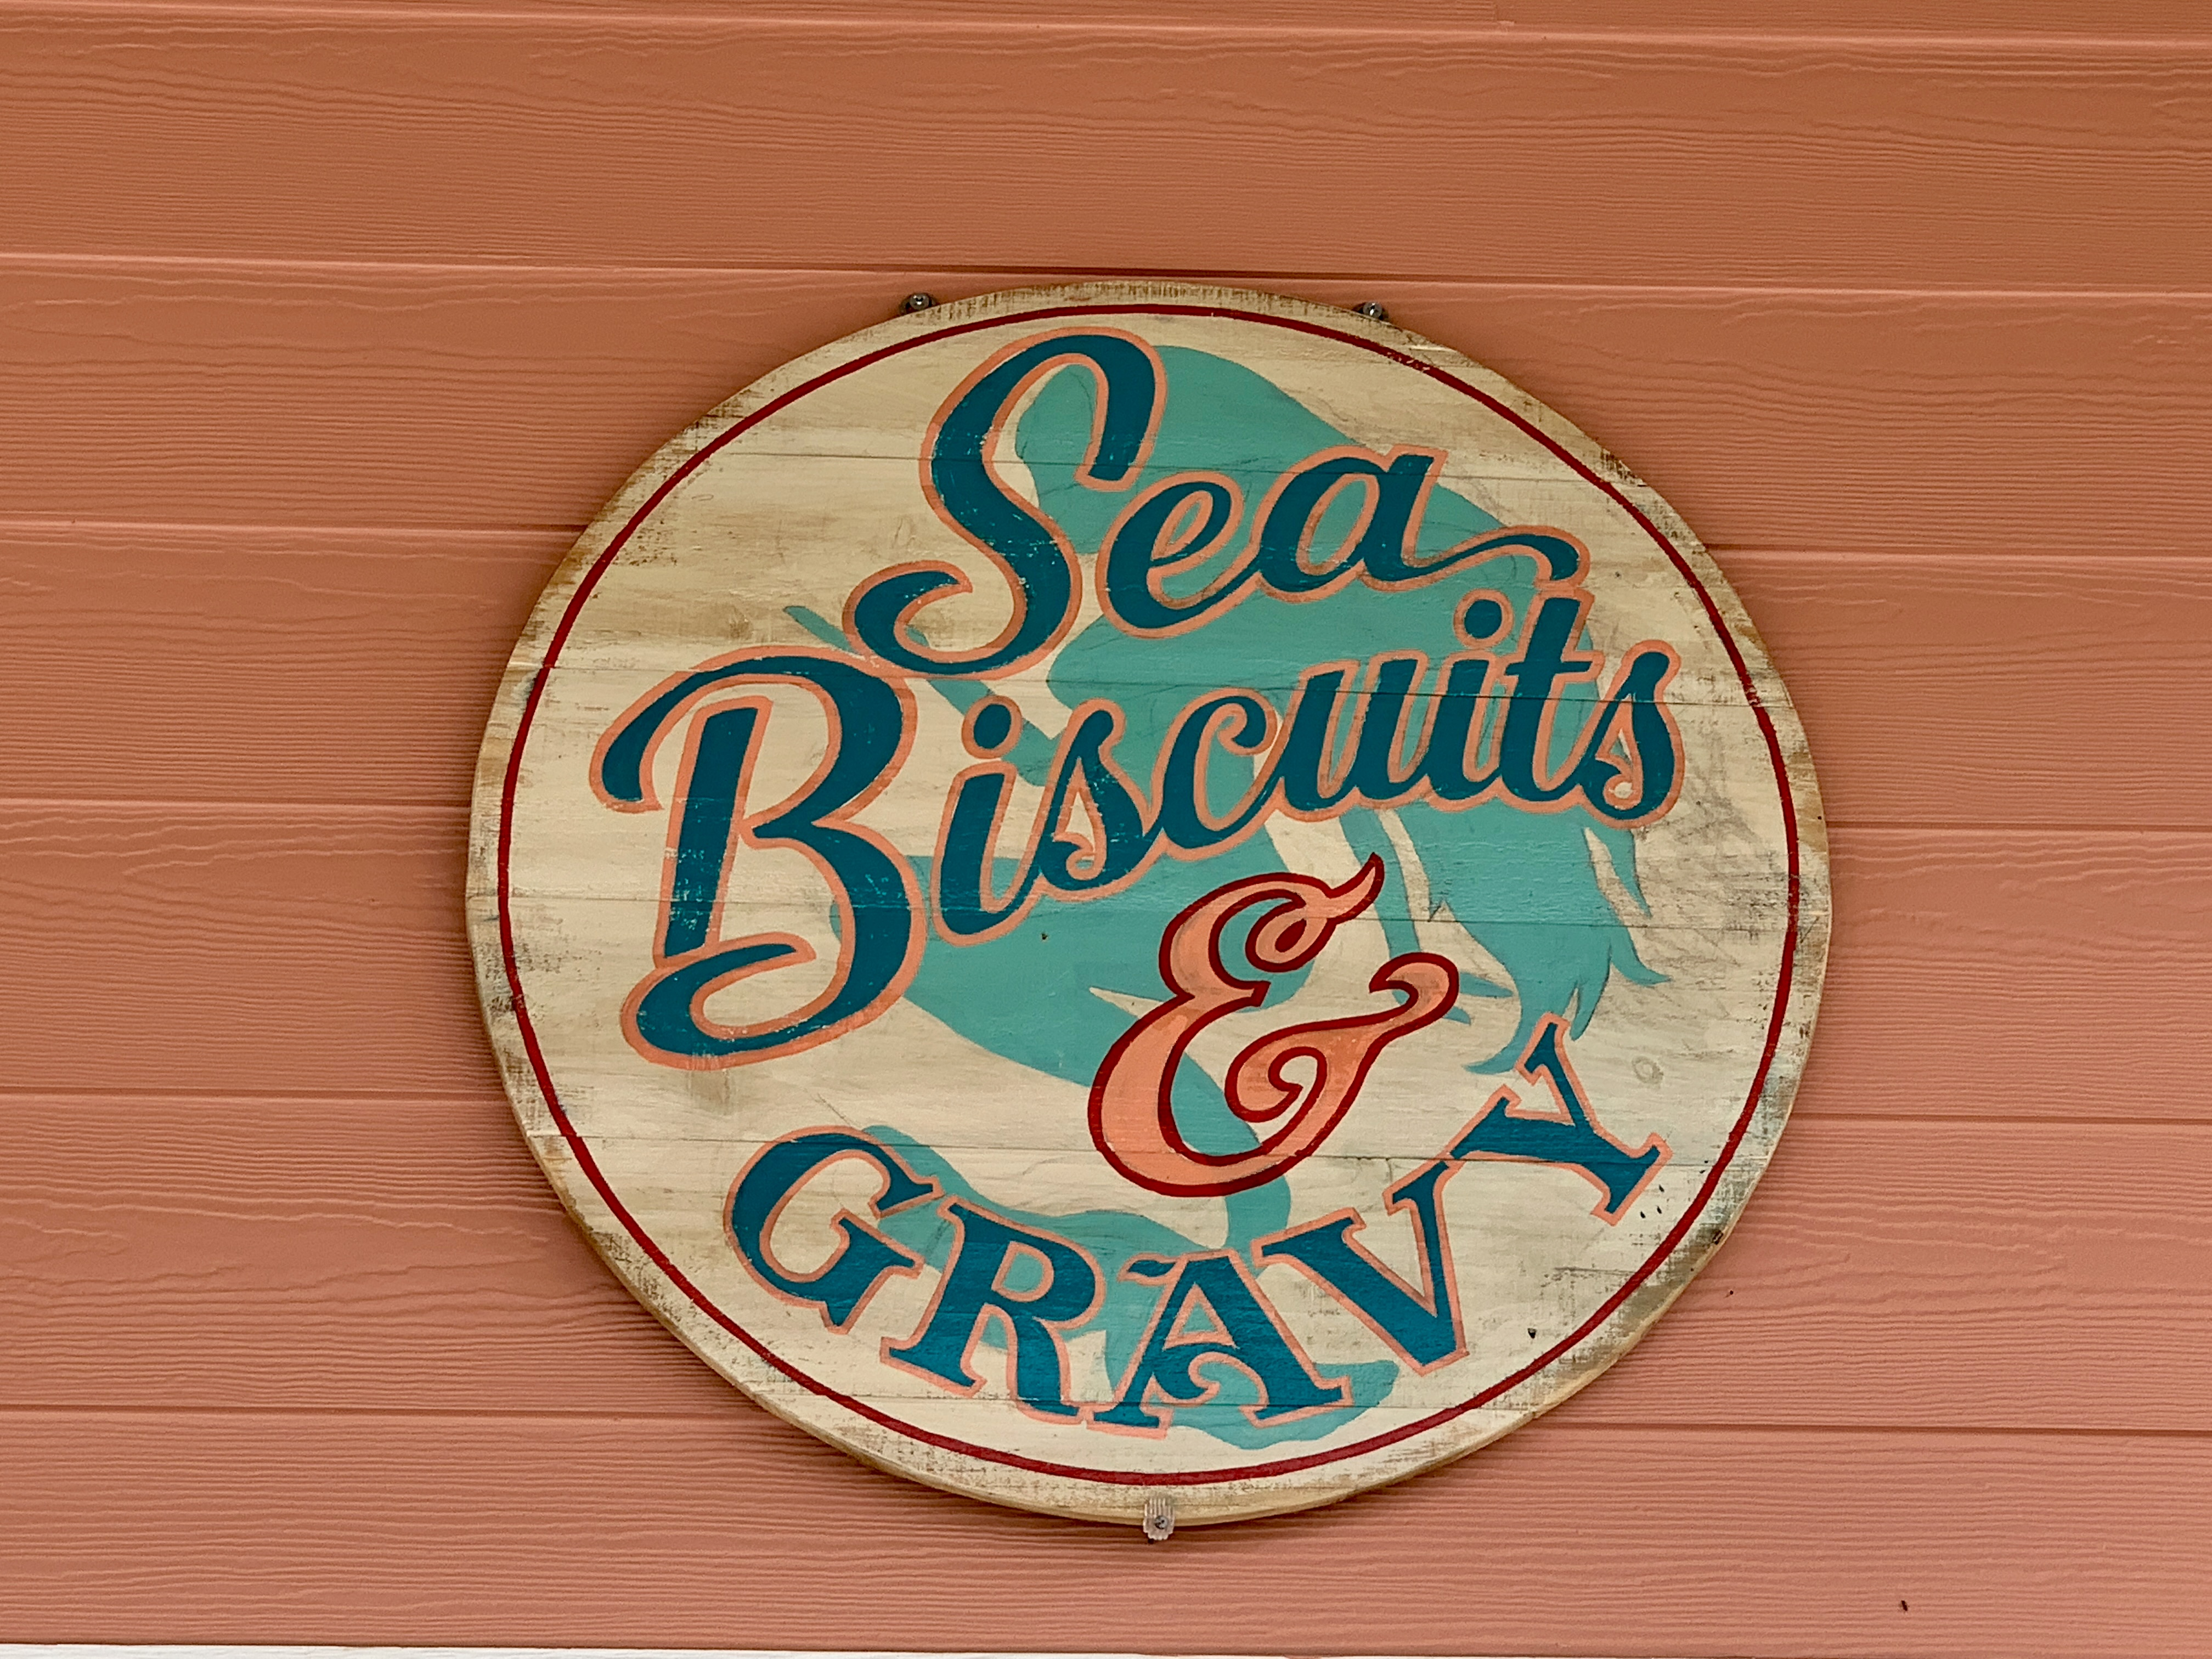 Sea Biscuits and Gravy | Photo 5